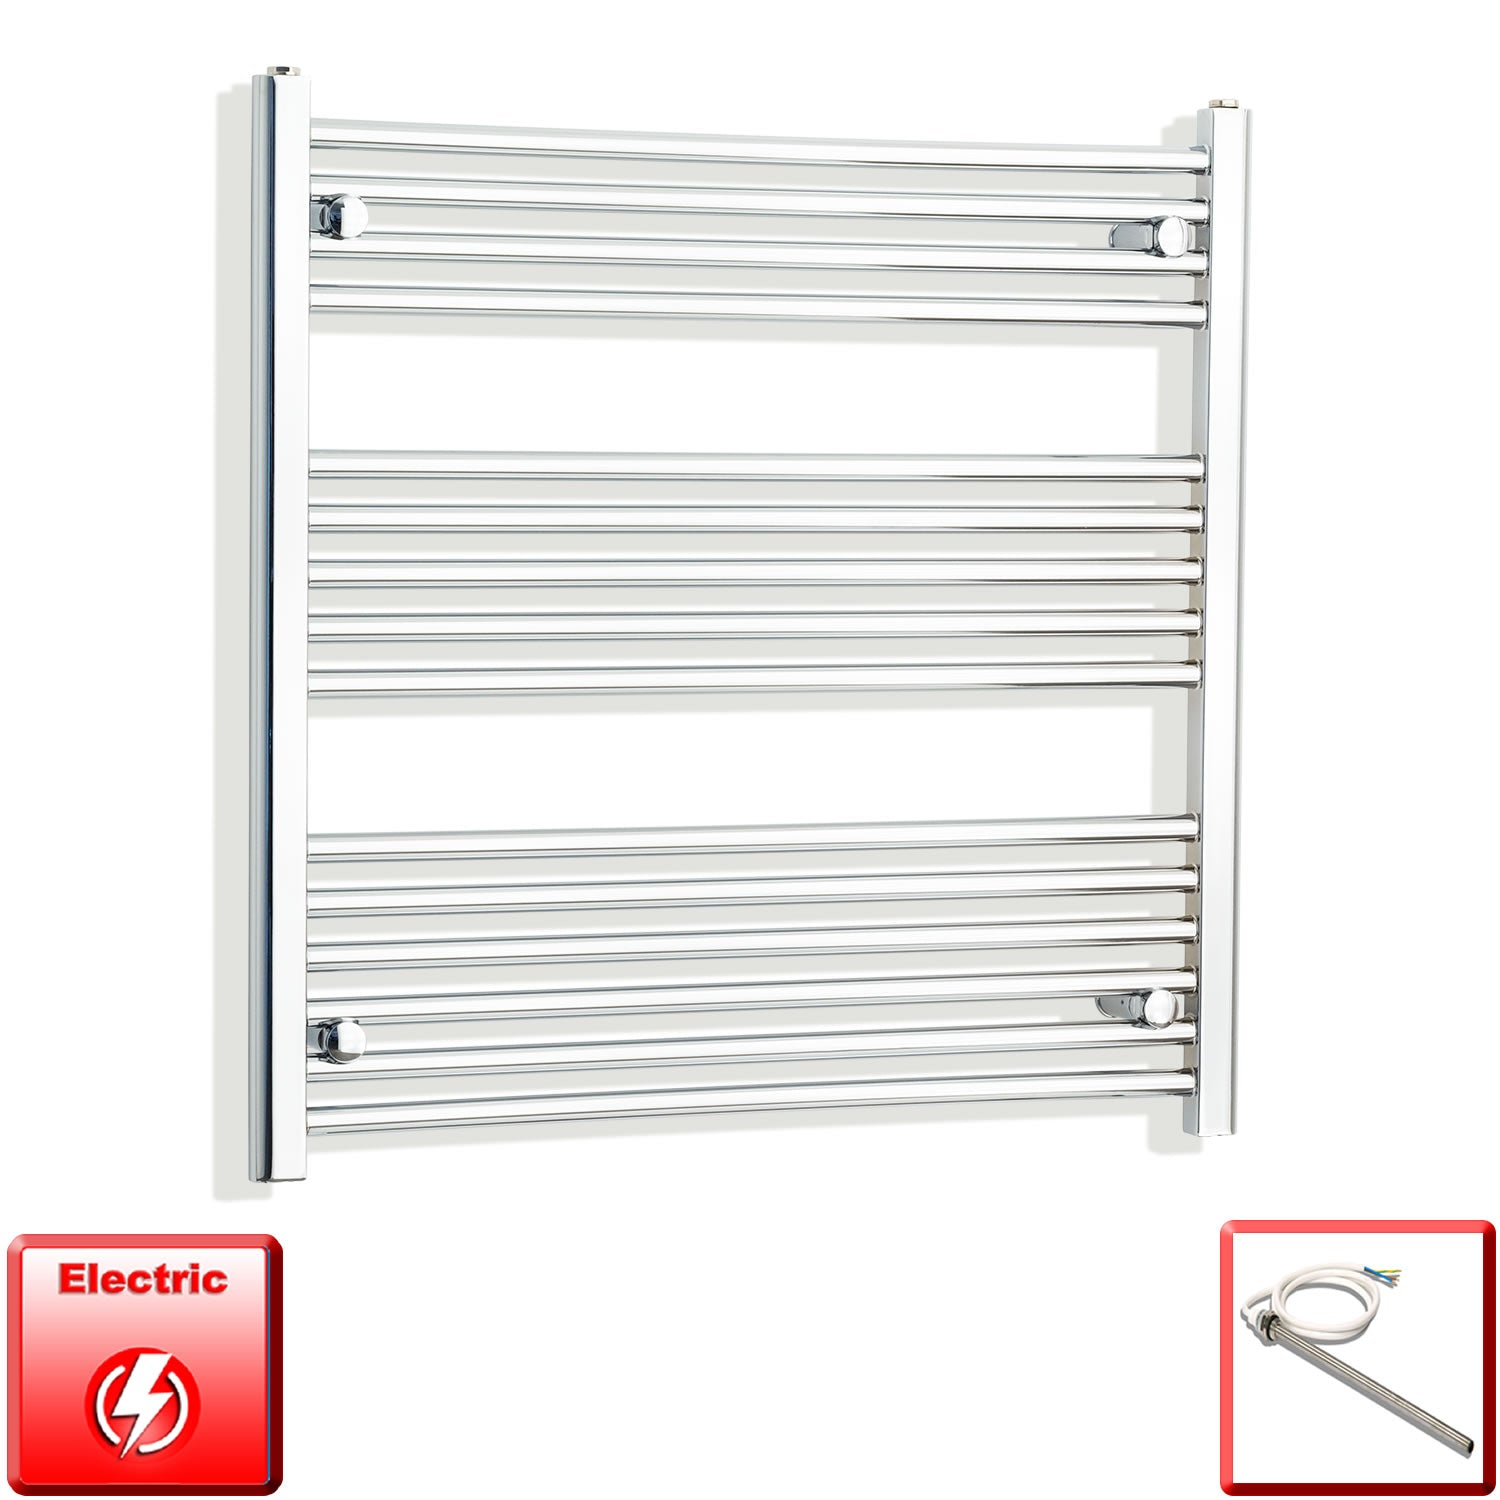 900mm Wide 800mm High Pre-Filled Chrome Electric Towel Rail Radiator With Single Heat Element